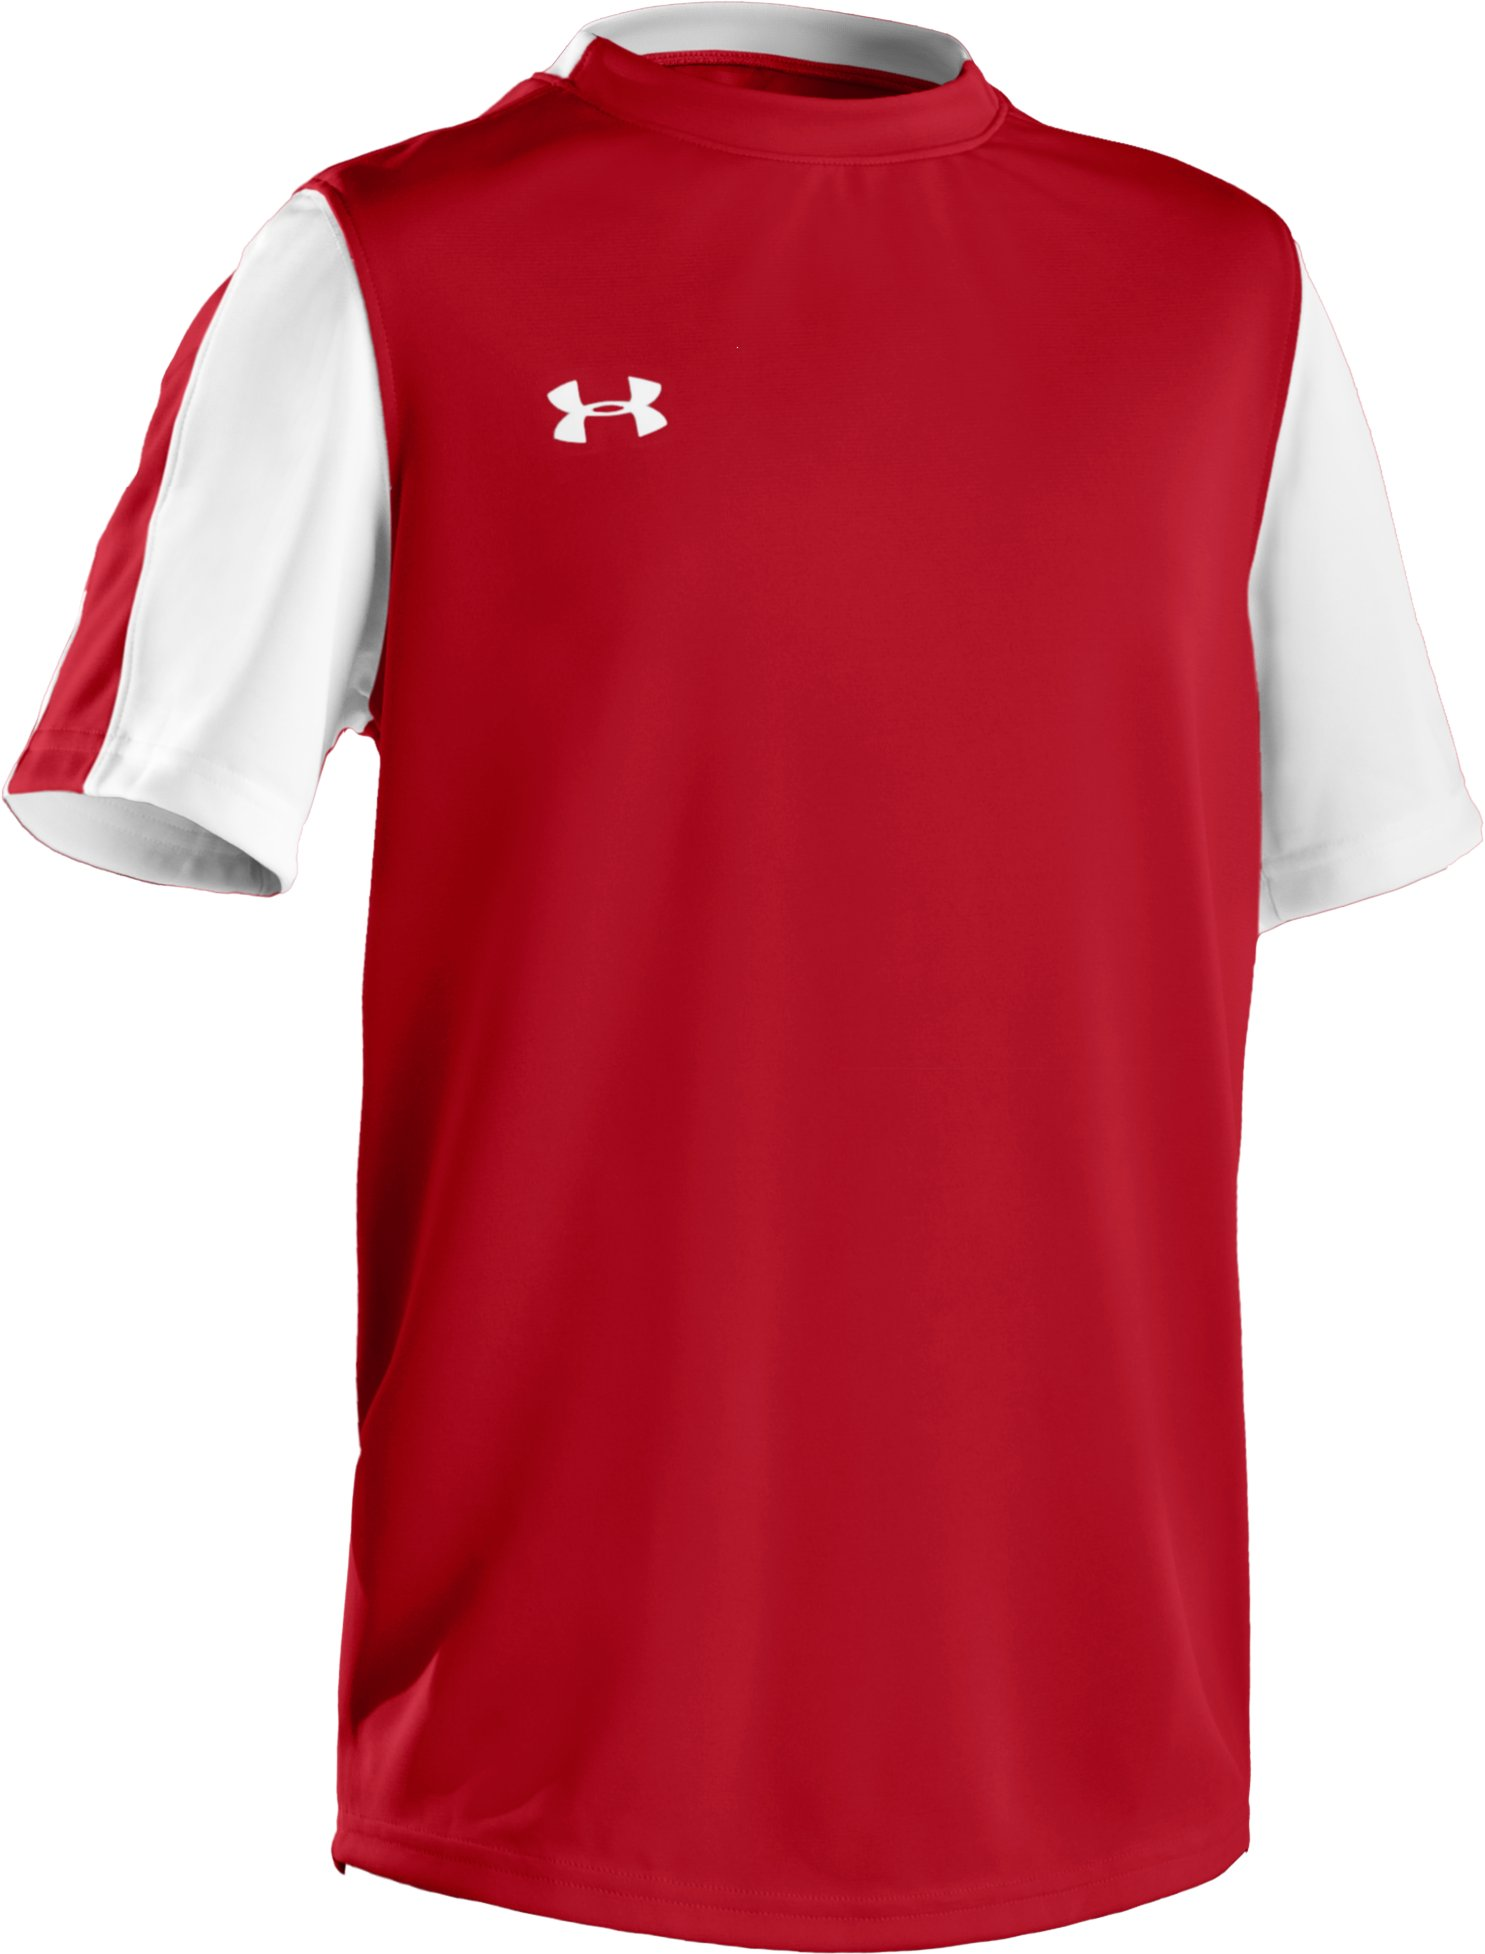 Boys' UA Classic Short Sleeve Jersey, Red